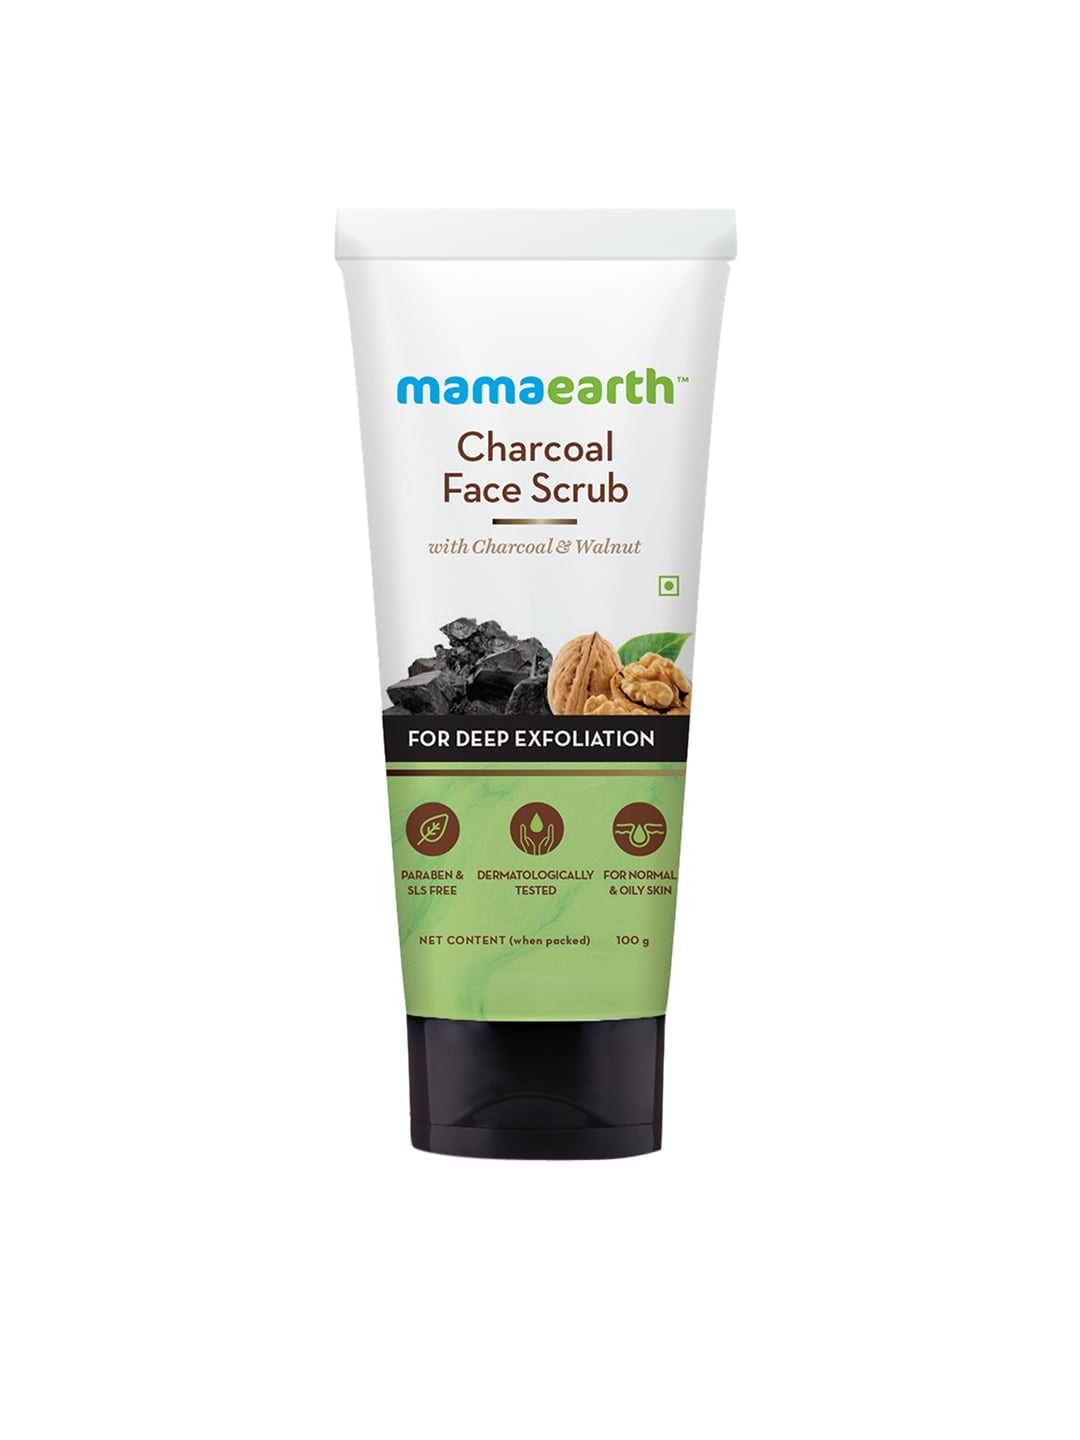 Mamaearth Charcoal Face Sustainable Scrub with Charcoal and Walnut for Deep Exfoliation 100 g